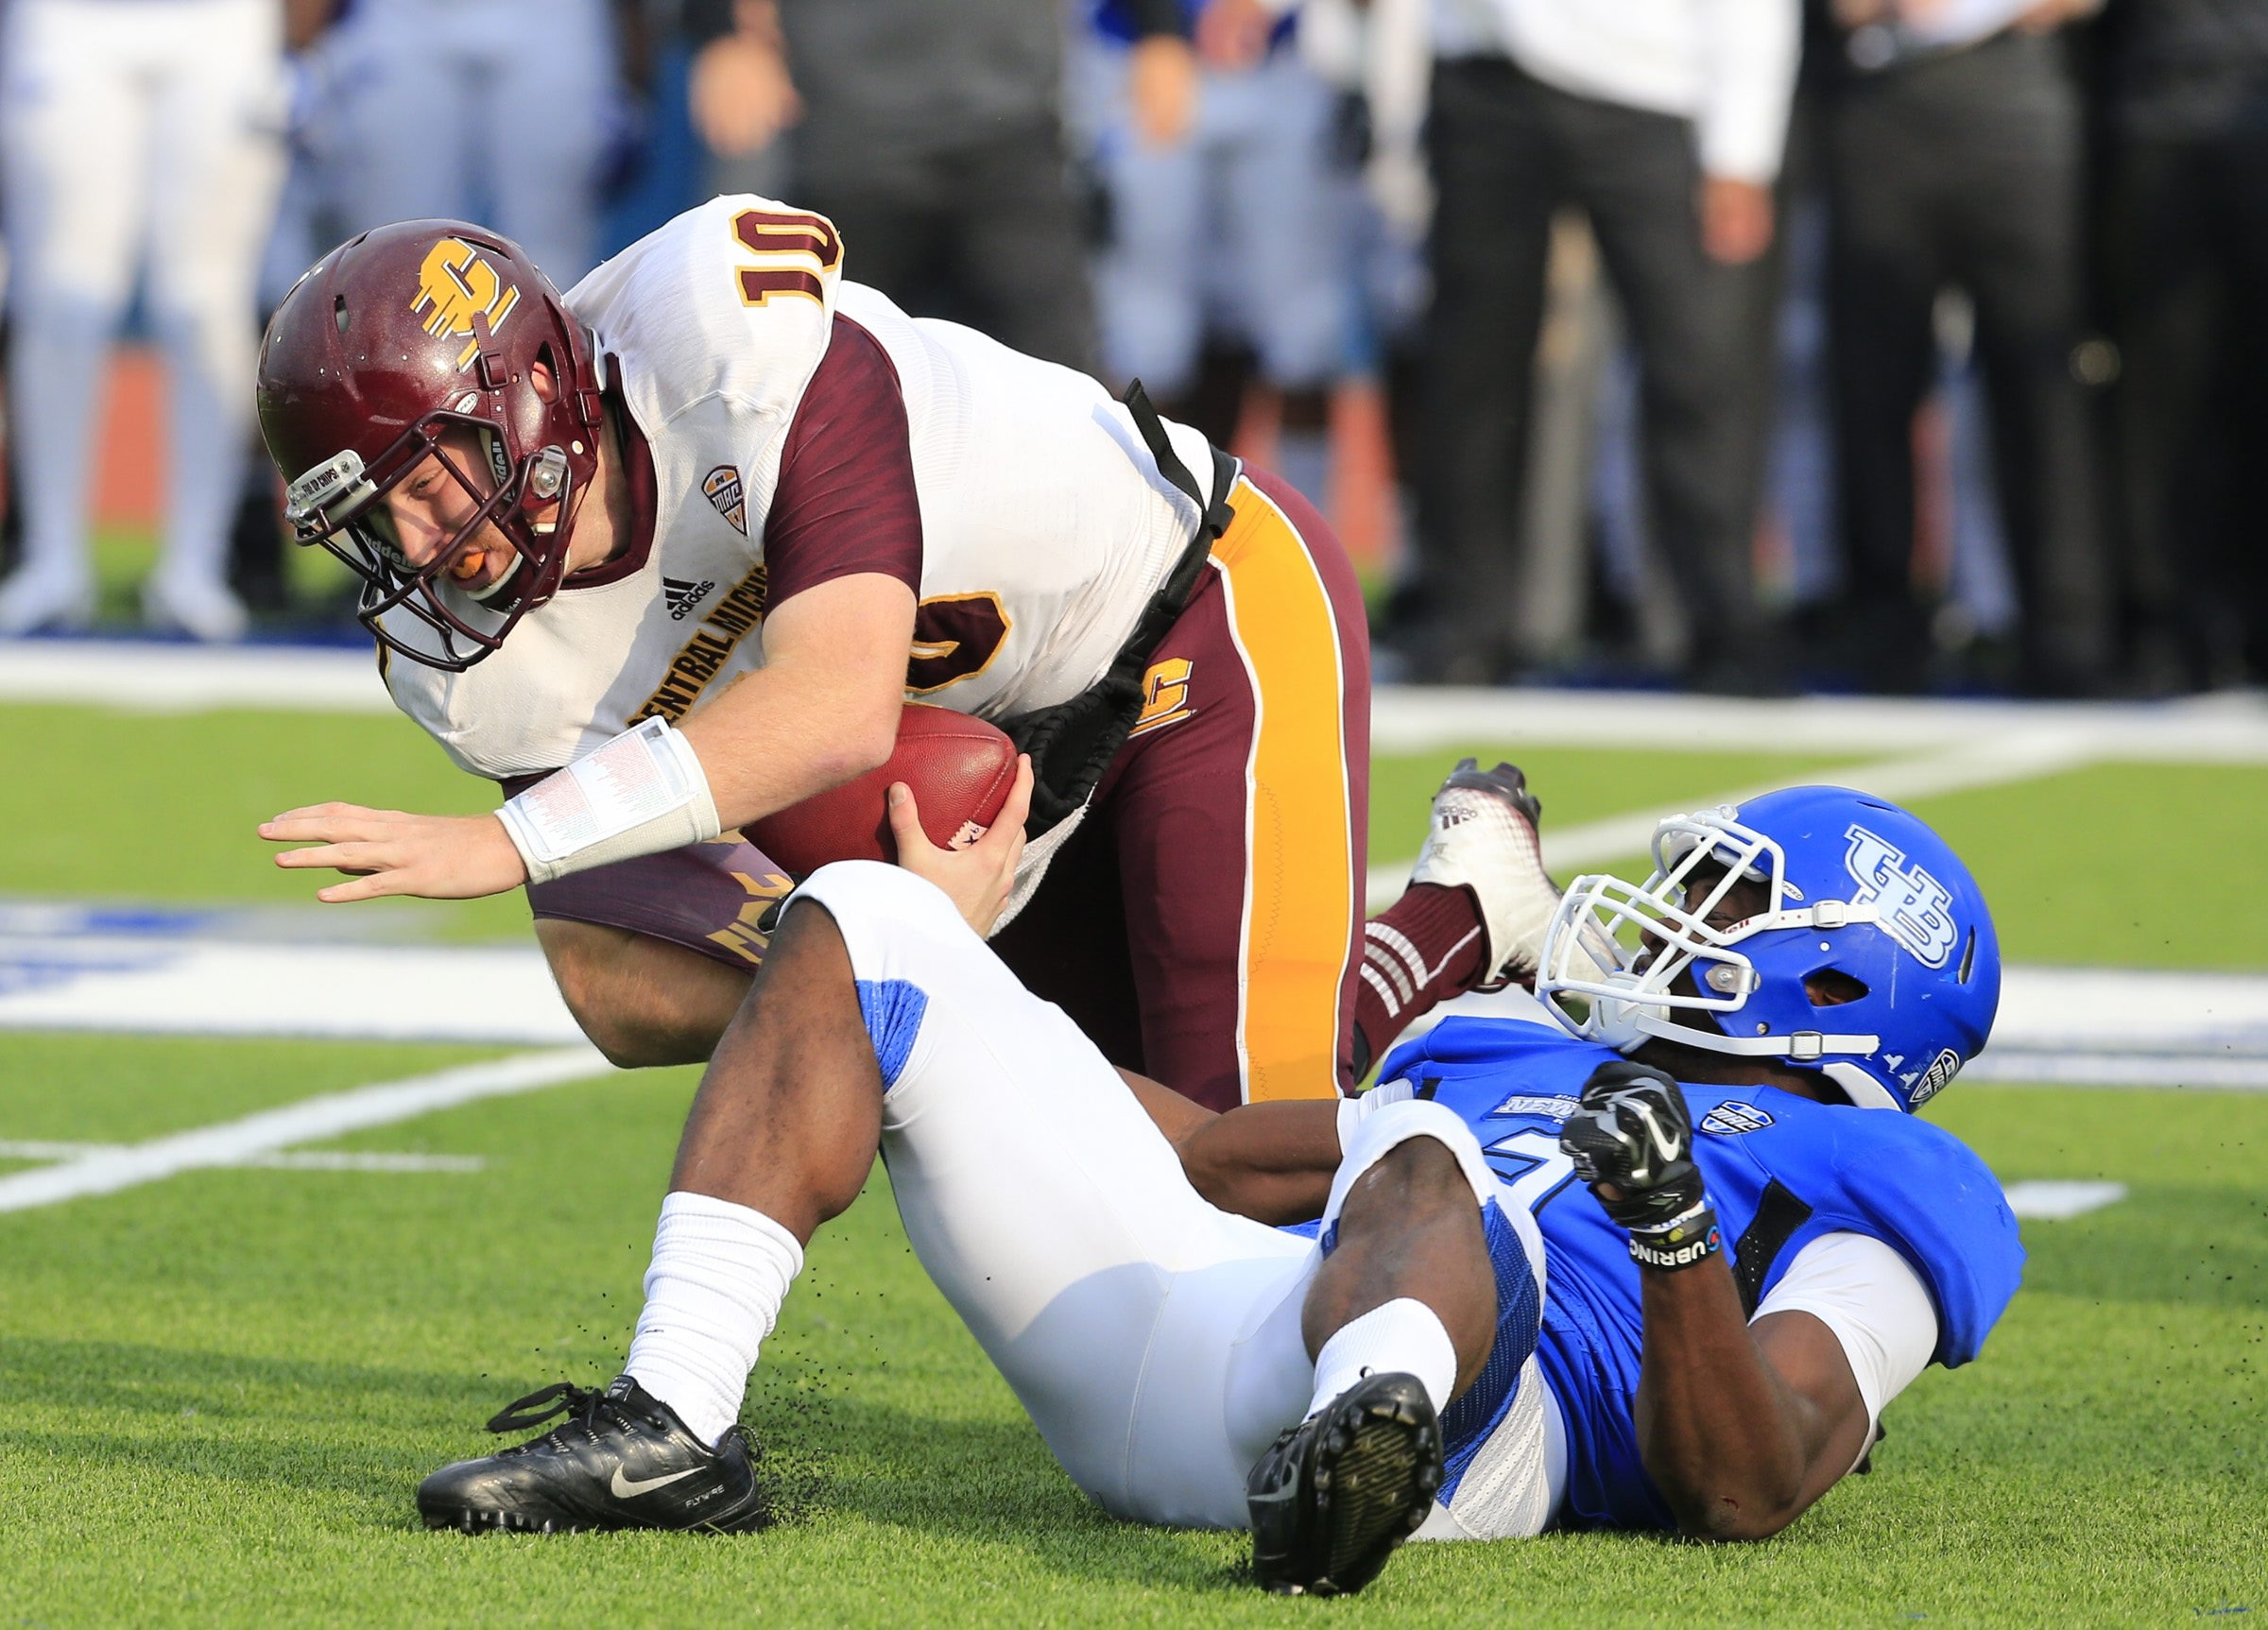 UB produced five sacks on Central Michigan quarterback Cooper Rush, including this one by Okezie Alozie.